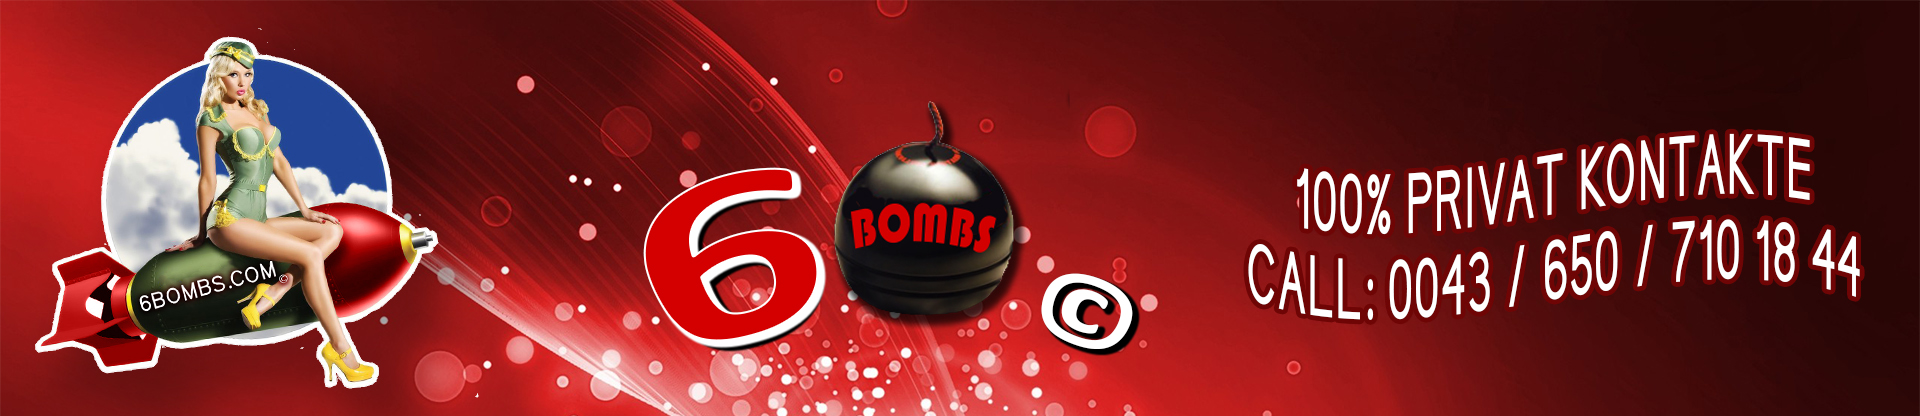 6BOMBS WALLPAPER ESCORT WIEN